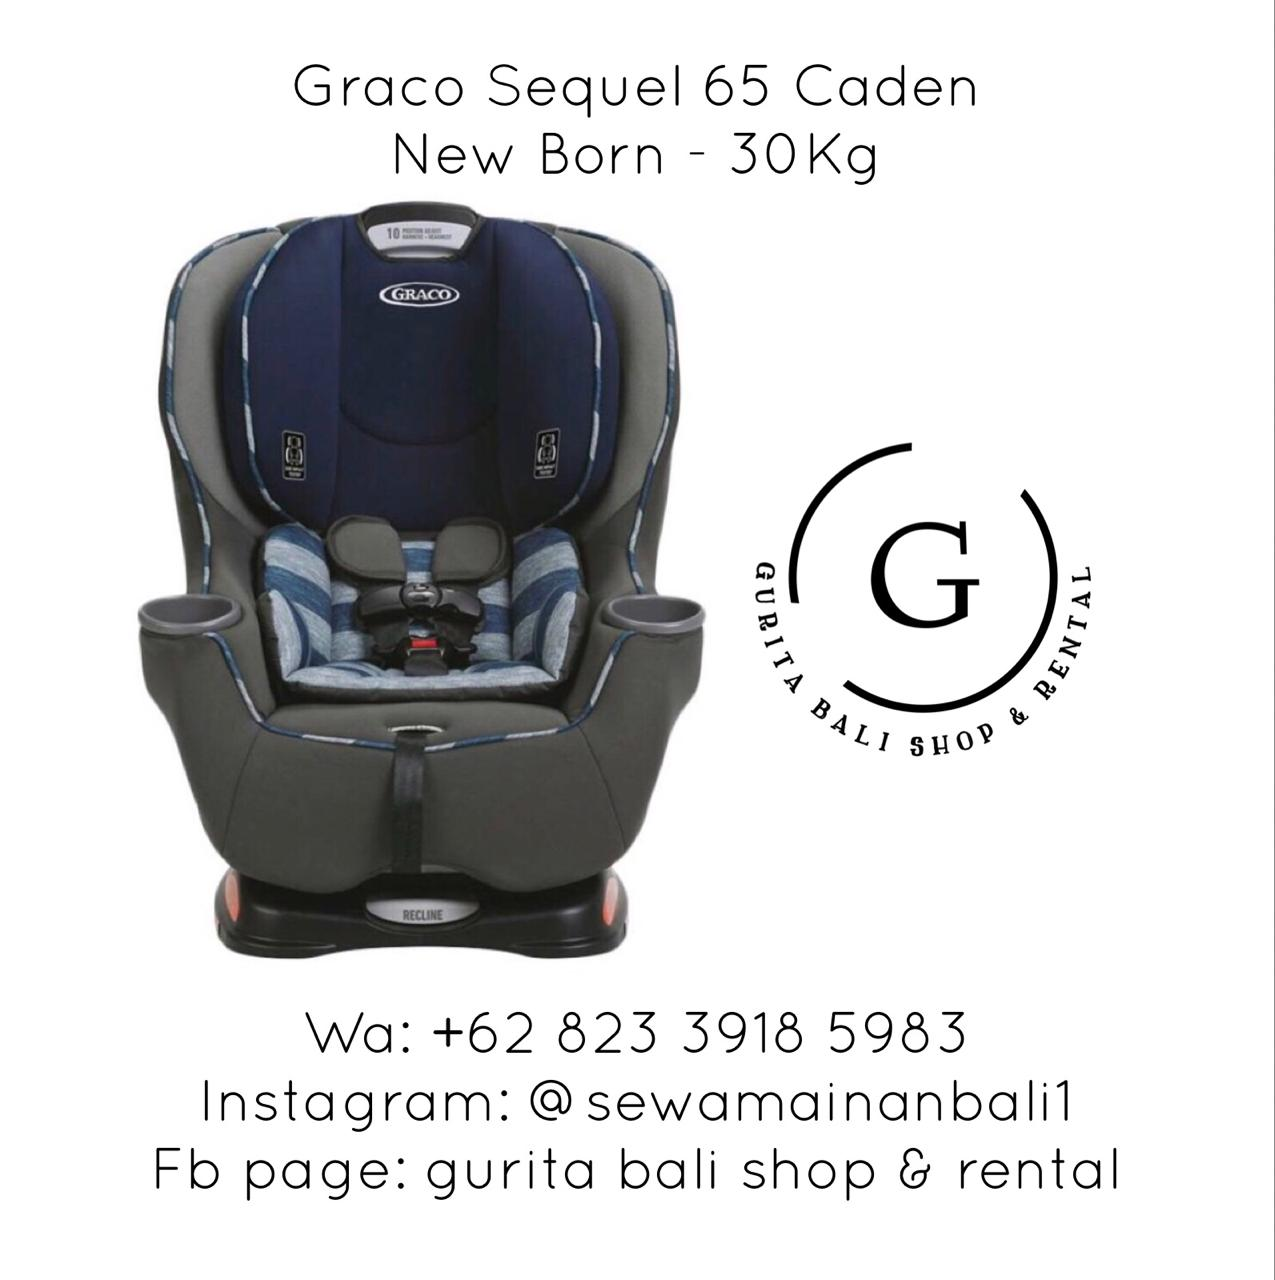 GRACO SEQUEL 65 CADEN (2)